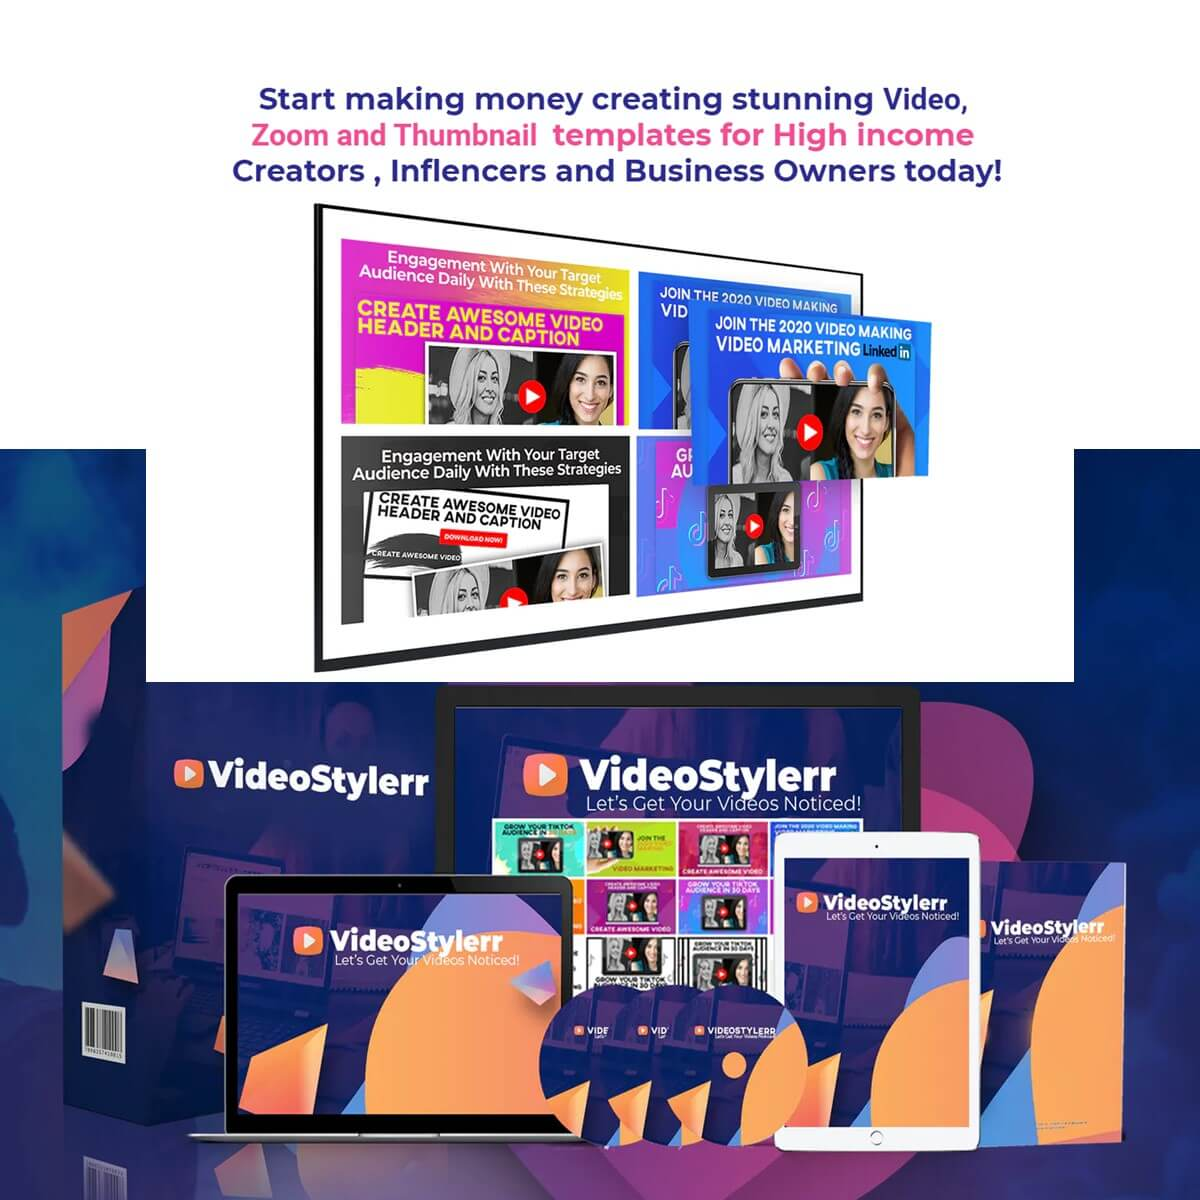 Videostylerr – Youtube Thumbnail Banner Creation Software Tools  Lifetime Software Deals for $27 only